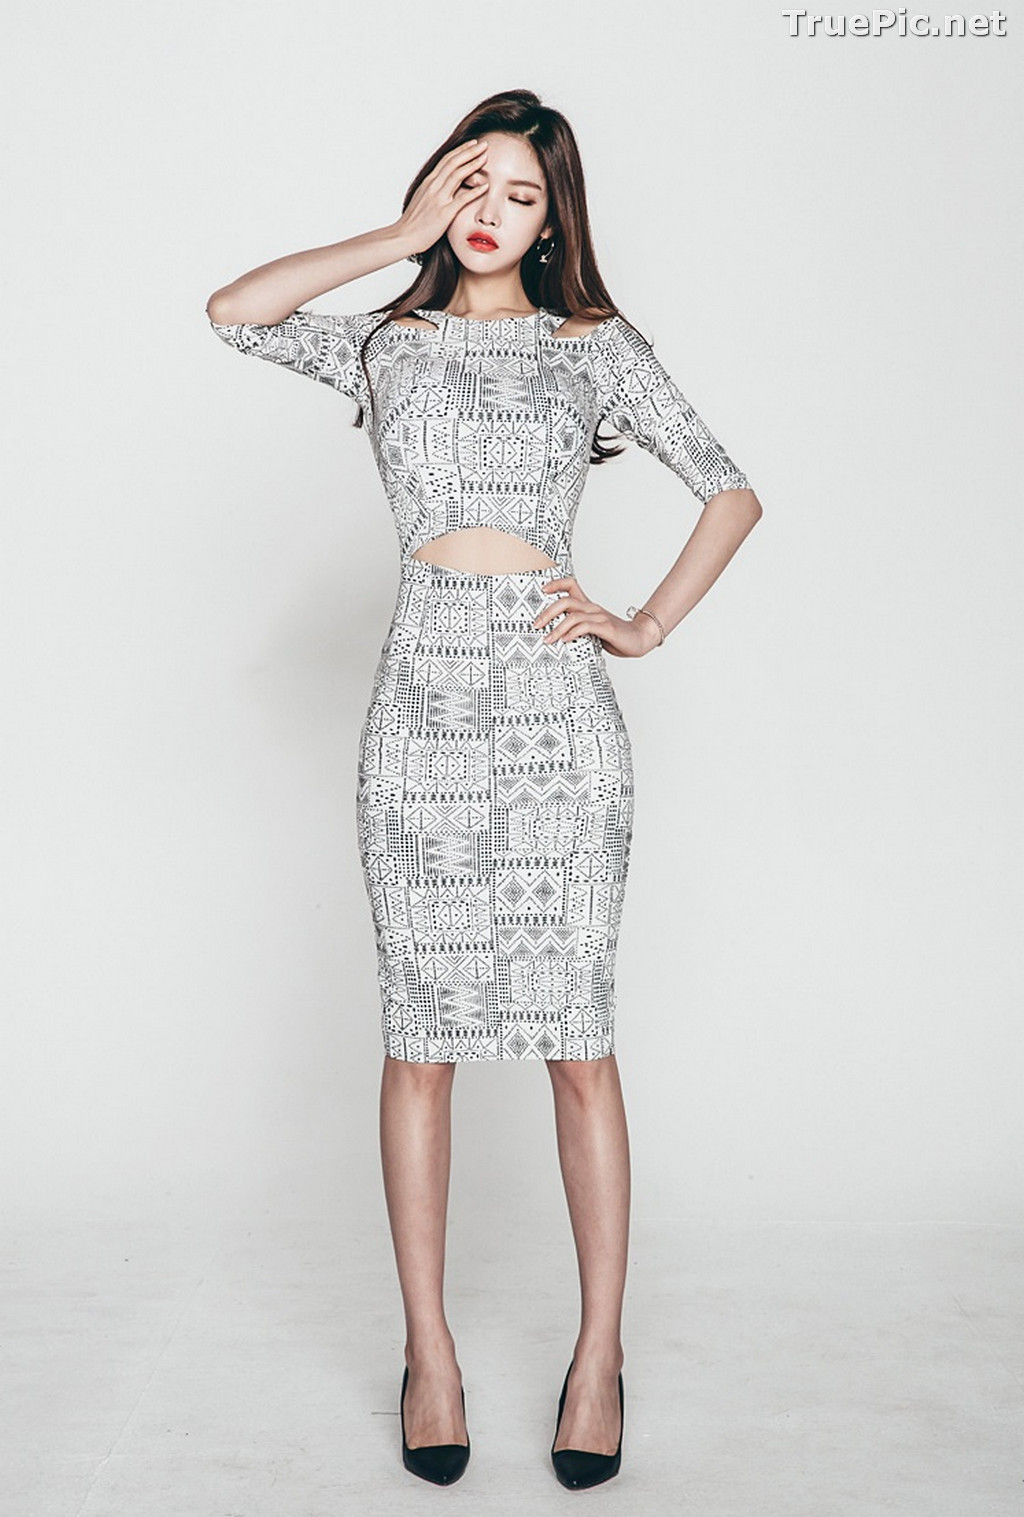 Image Korean Beautiful Model – Park Jung Yoon – Fashion Photography #9 - TruePic.net - Picture-5